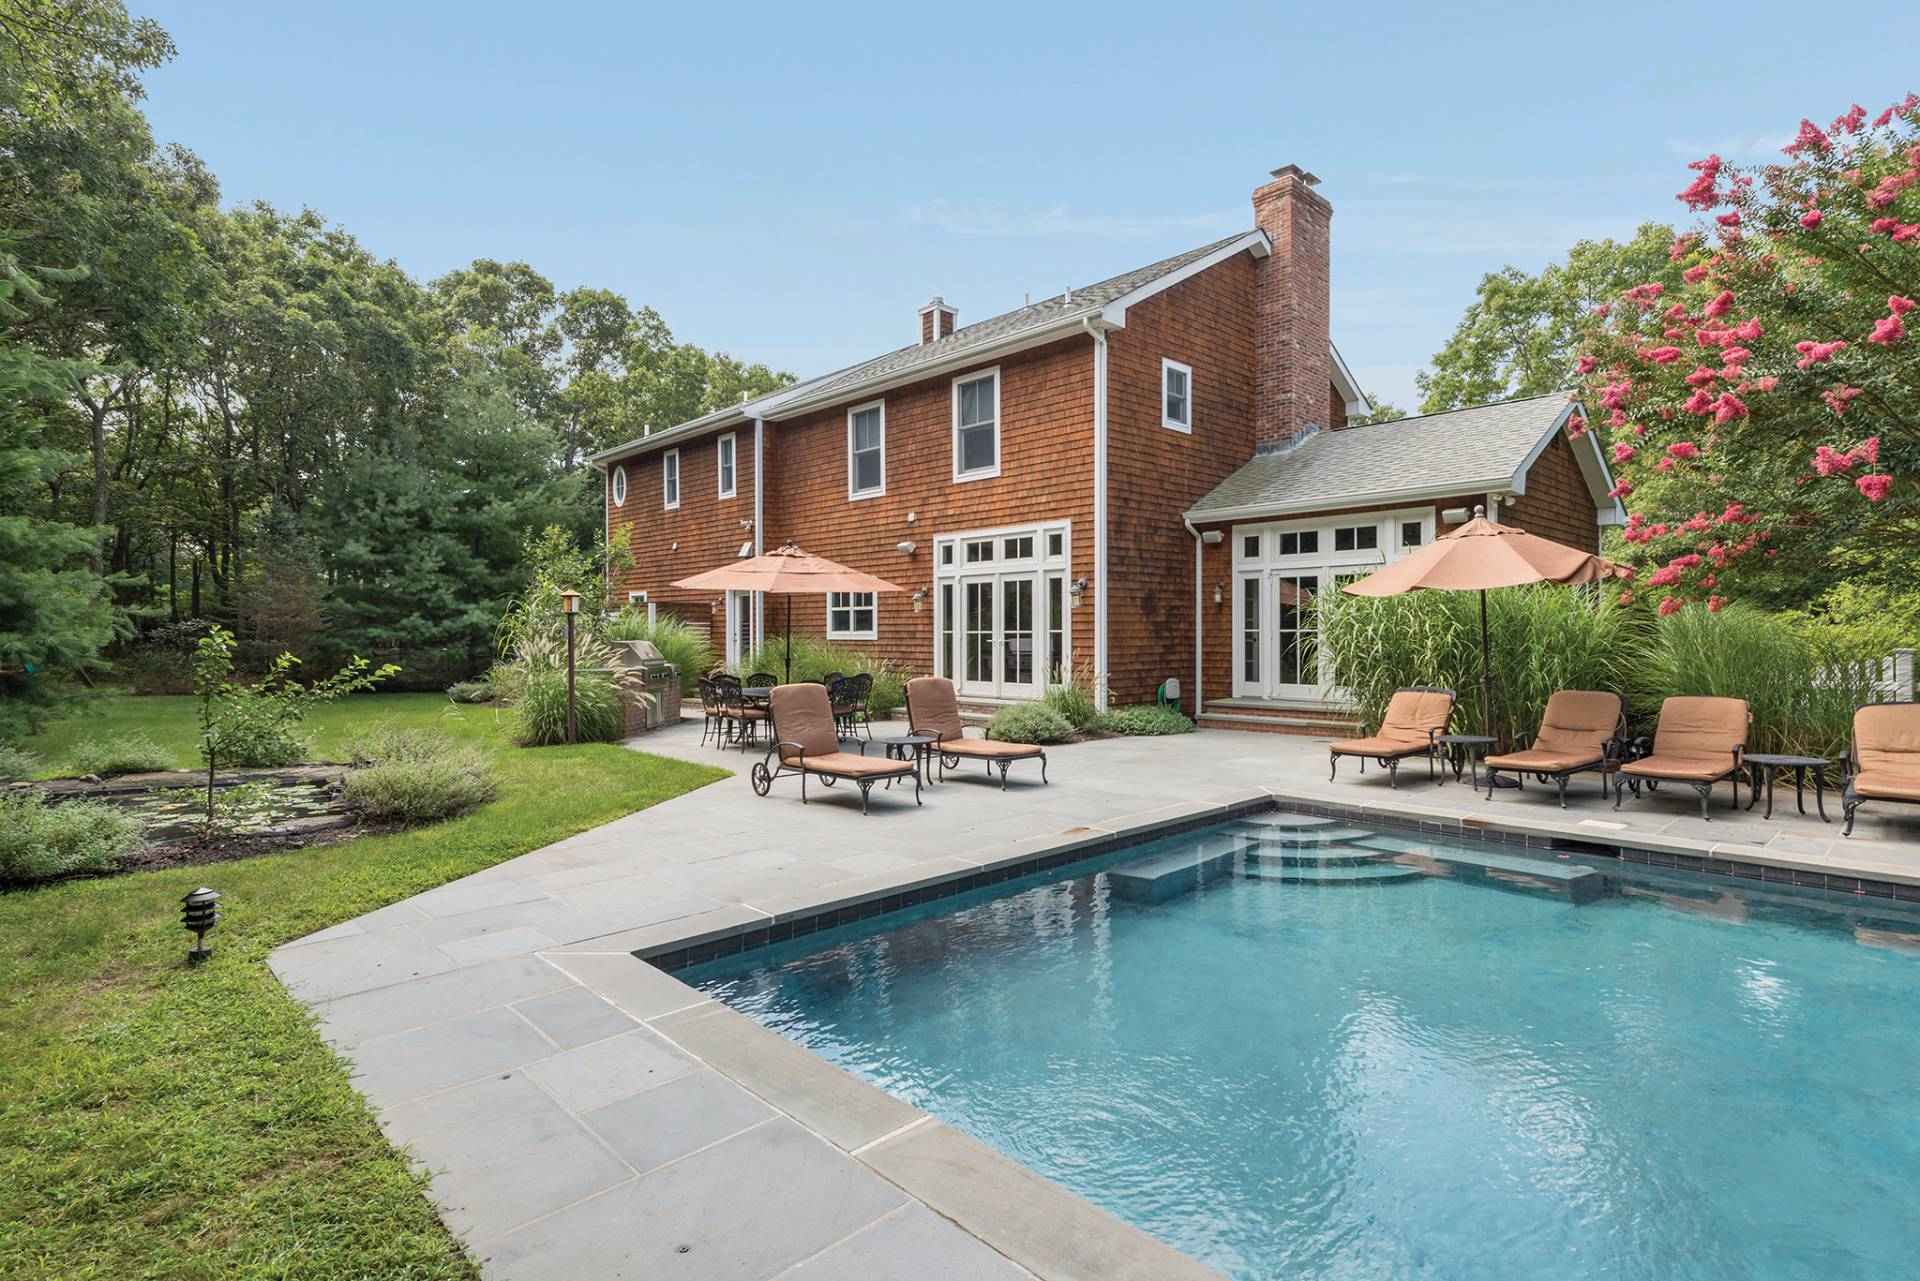 Single Family Home for Sale at Beautifully Sited And Constructed Home - Hands Creek Farm 2 Trails End Road, East Hampton, New York